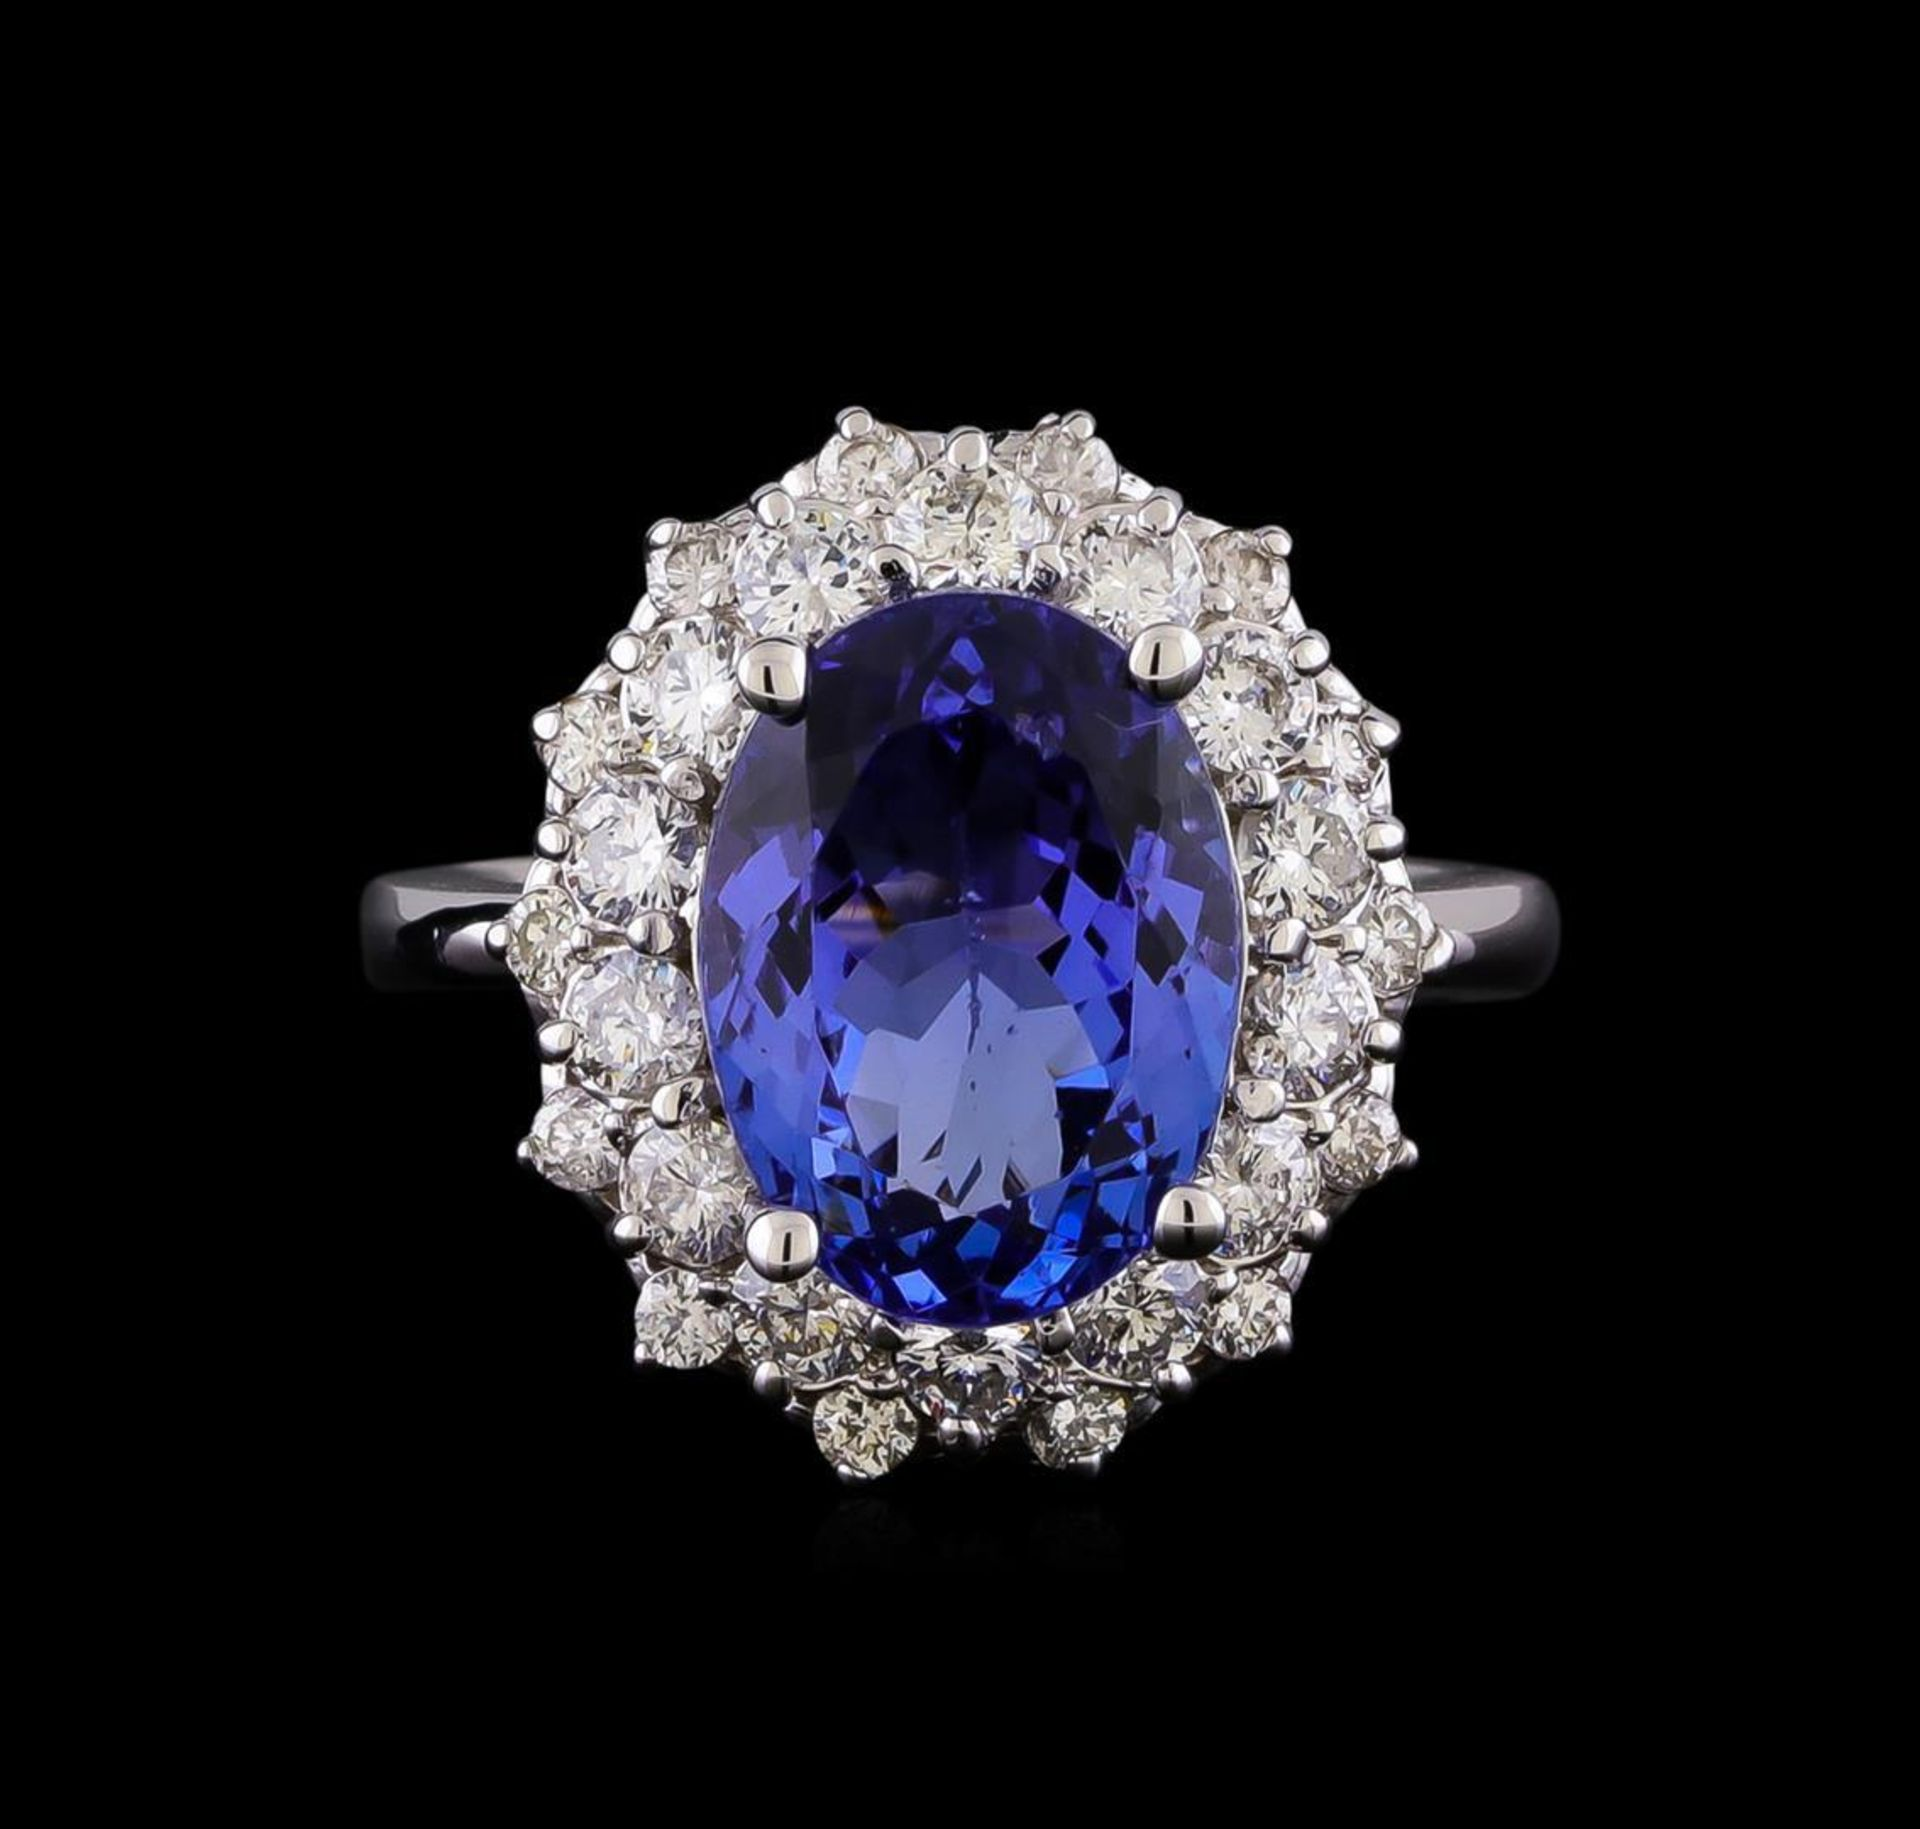 5.53 ctw Tanzanite and Diamond Ring - 14KT White Gold - Image 2 of 5